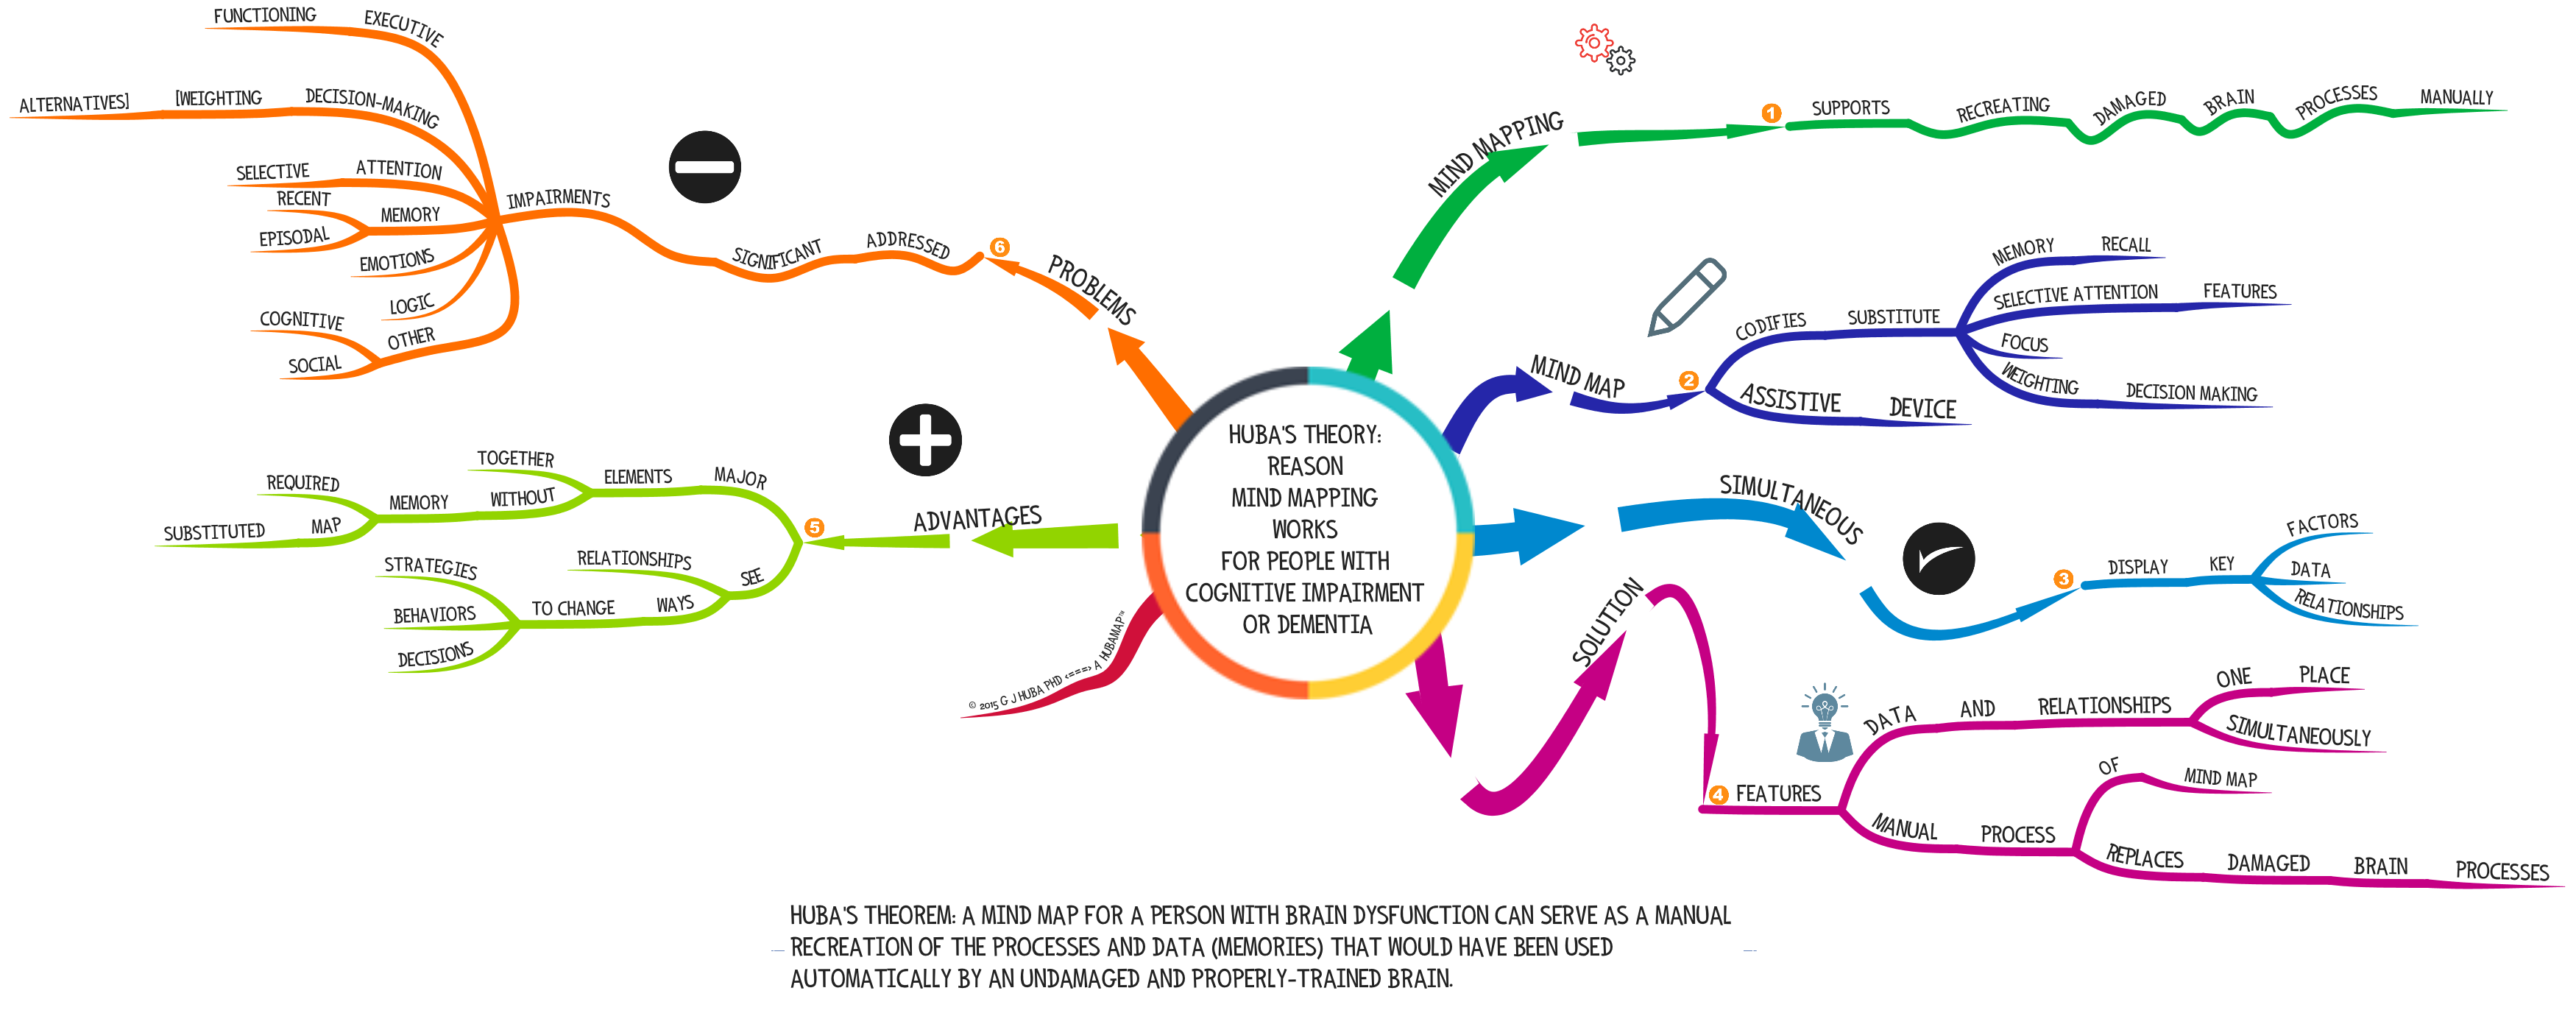 HUBA'S THEORY REASON MIND MAPPING WORKS FOR PEOPLE WITH COGNITIVE IMPAIRMENT OR DEMENTIA